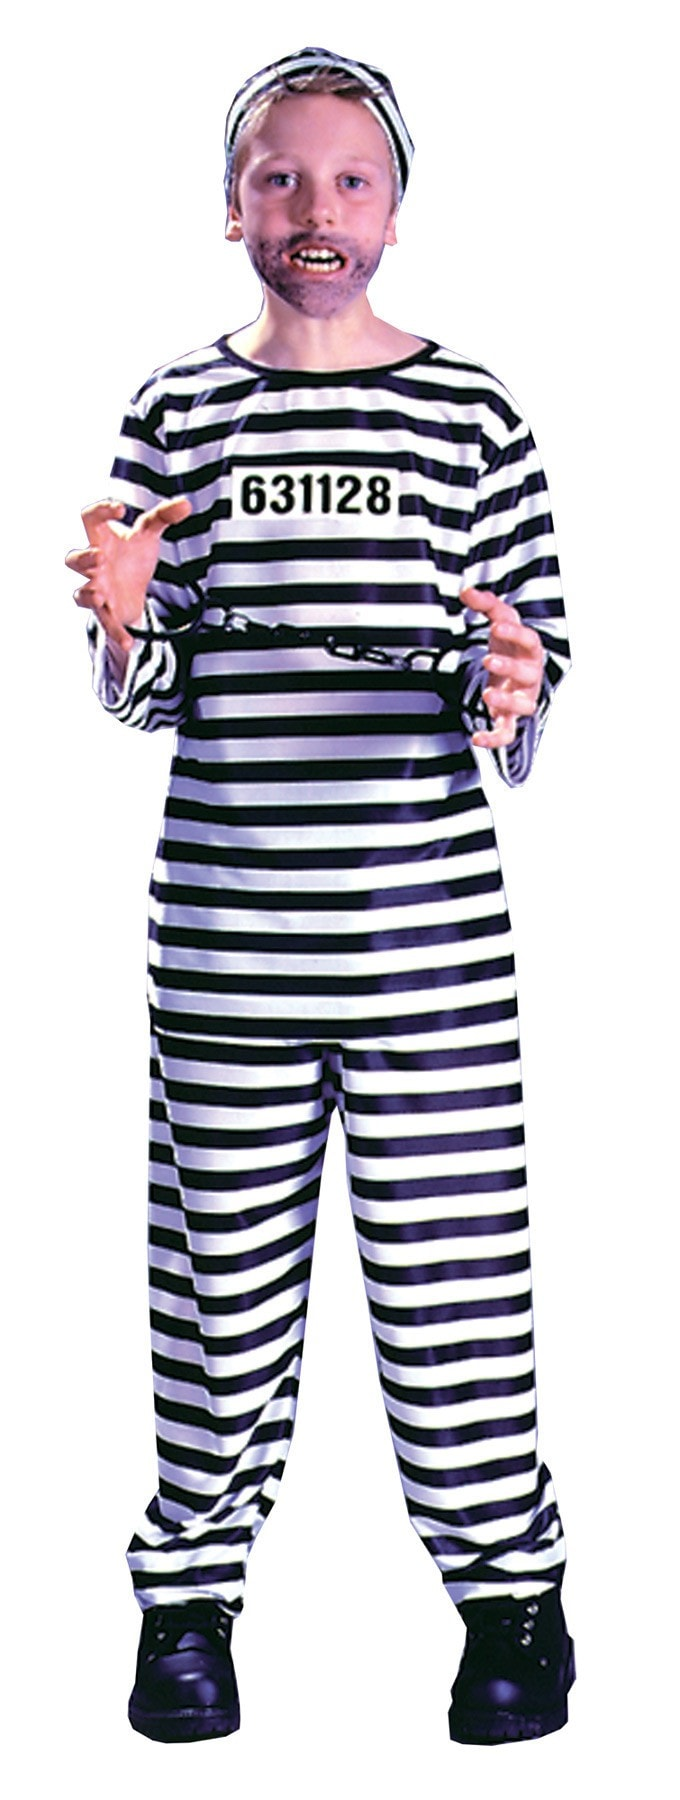 Morris Jailbird Child Large - MaxWigs